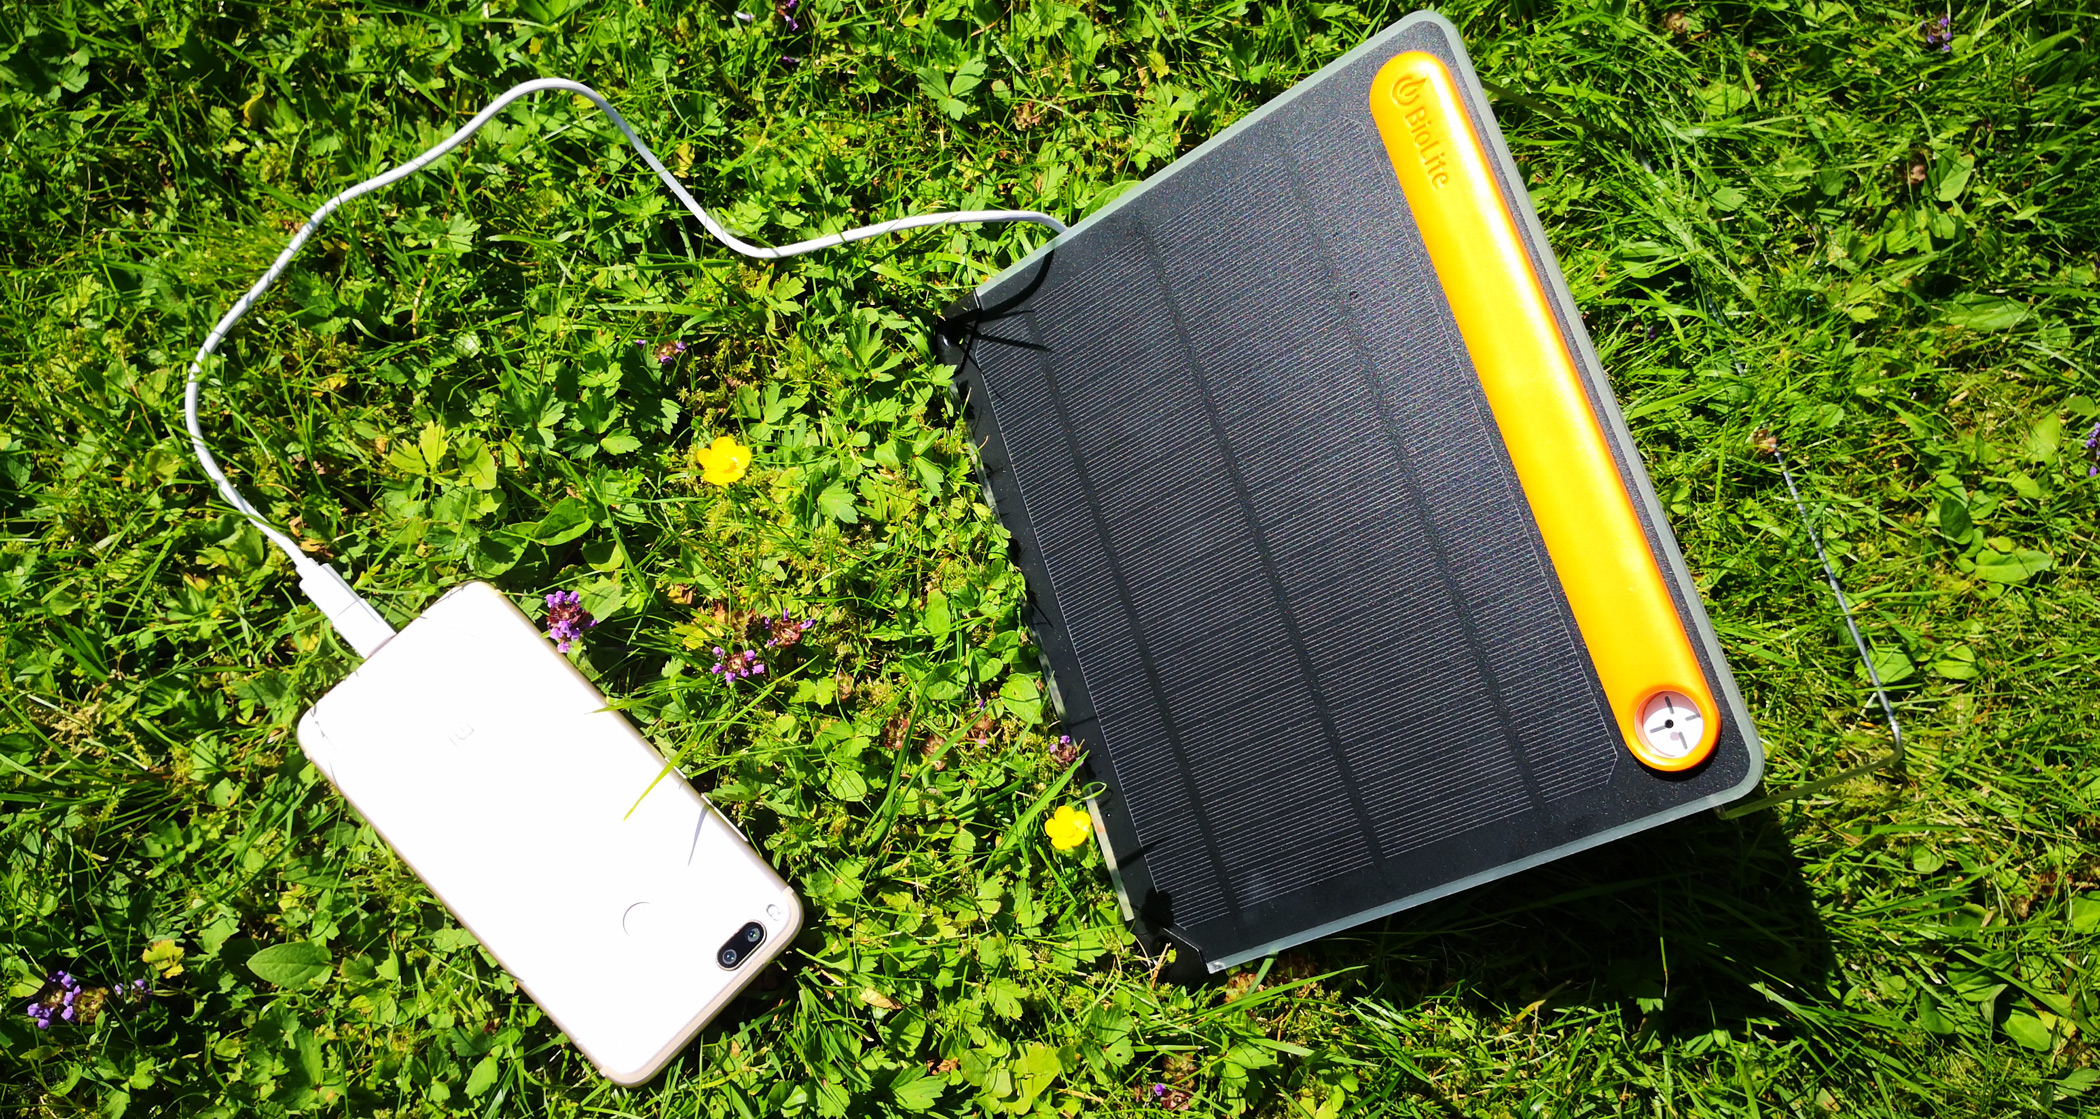 Article image for BioLite SolarPanel 5+ review